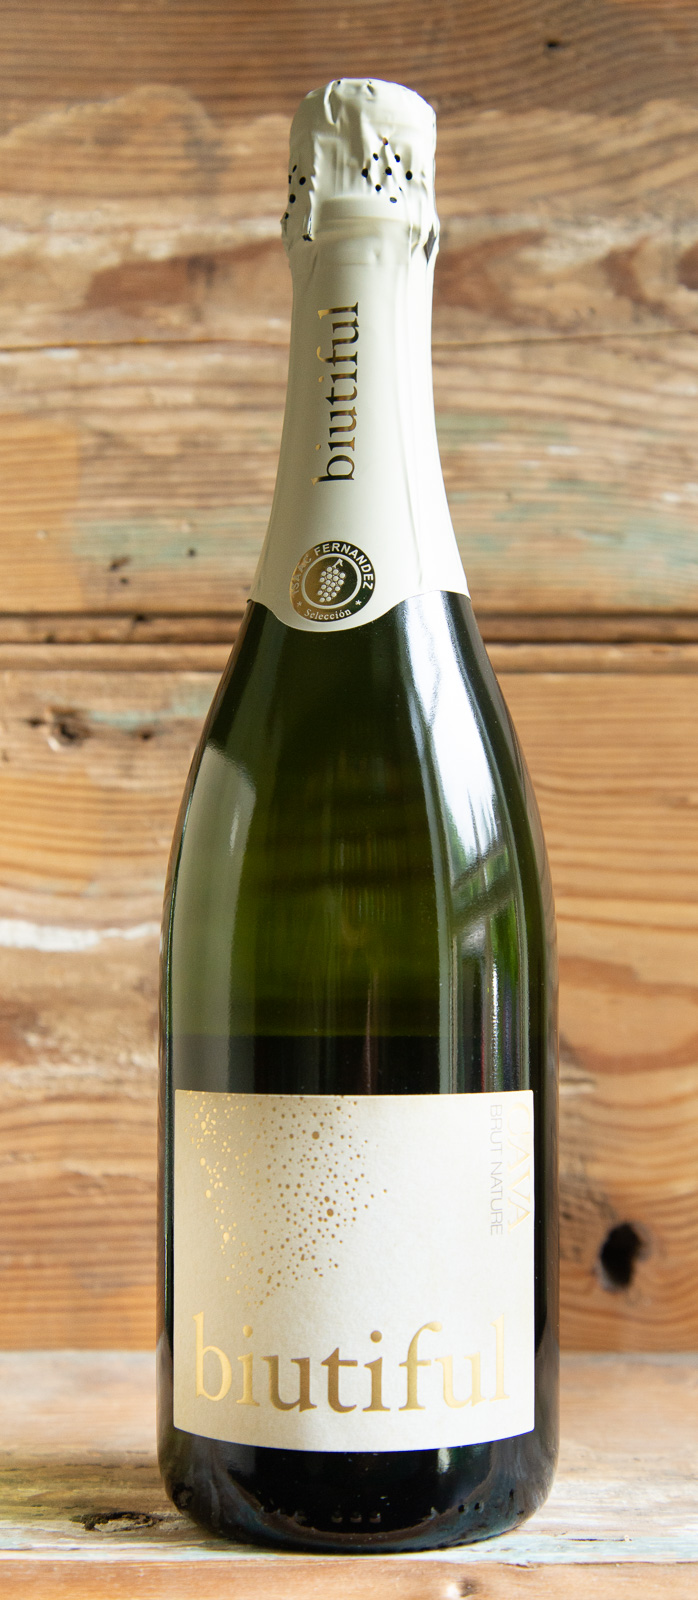 Issac Fernandez Biutiful Cava Brut Nature NV - Origin: SpainRetail: $13.95 | Sale: $12.55This elegant and easy drinking Cava is produced from some of this producer's best grapes sourced from the Western portion of Requena, from vineyards with a Northern orientation. It could be labeled as a Reserva due to fact that it spends 15 months on lees, as opposed to the minimum of 9 months. It is a Brut Nature, which is to say that no sugar was added at the end of aging on lees. The nose delivers dry apple and pear aromas, while the palate is fairly full and round, with apple and lime flavors. This brut Cava is easily drinkable, food-friendly, and very affordable. Pair this with dinner or a picnic with friends while sharing prosciutto and cheese. This is the perfect crowd pleasing sparkling, so don't hesitate to grab another bottle while you're at it and celebrate Mother's Day. Cheers, Mom!80 % Macabeo | 20% Chardonnay